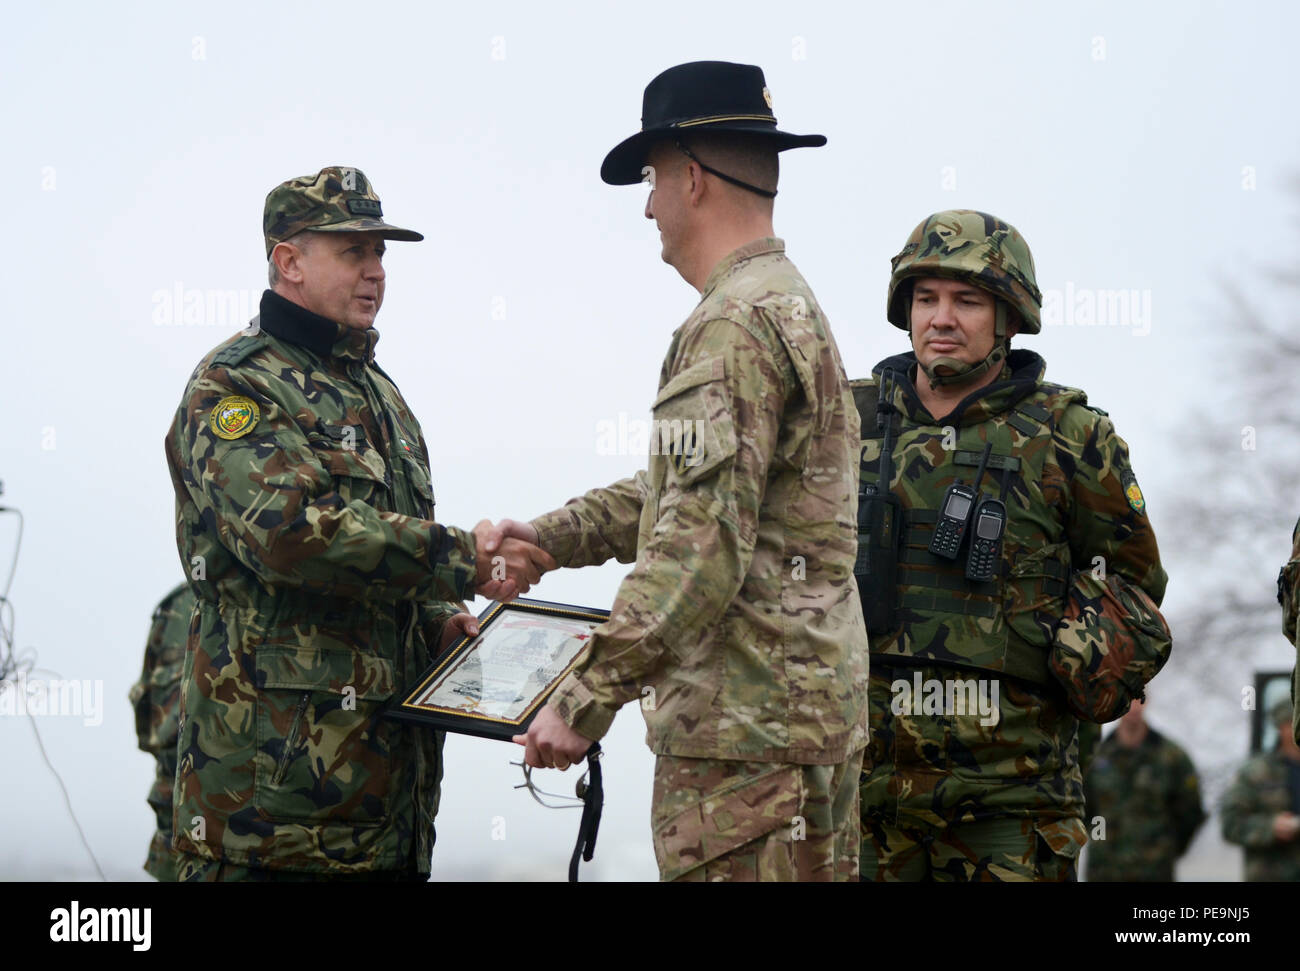 U.S. Army Lt. Col. Christopher Mahaffey (center), the commander of 5th Squadron, 7th Cavalry Regiment, 3rd Infantry Division, stationed at Fort Stewart, Ga., shakes hands with and presents gifts to Bulgarian Col. Margarit Mihailov (left), the commander of 61st Mechanized Brigade, during the closing ceremony of Exercise Peace Sentinel at Novo Selo Training Center, Bulgaria, Nov. 24, 2015. (U.S. Army photo by Staff Sgt. Steven M. Colvin/Released) - Stock Image